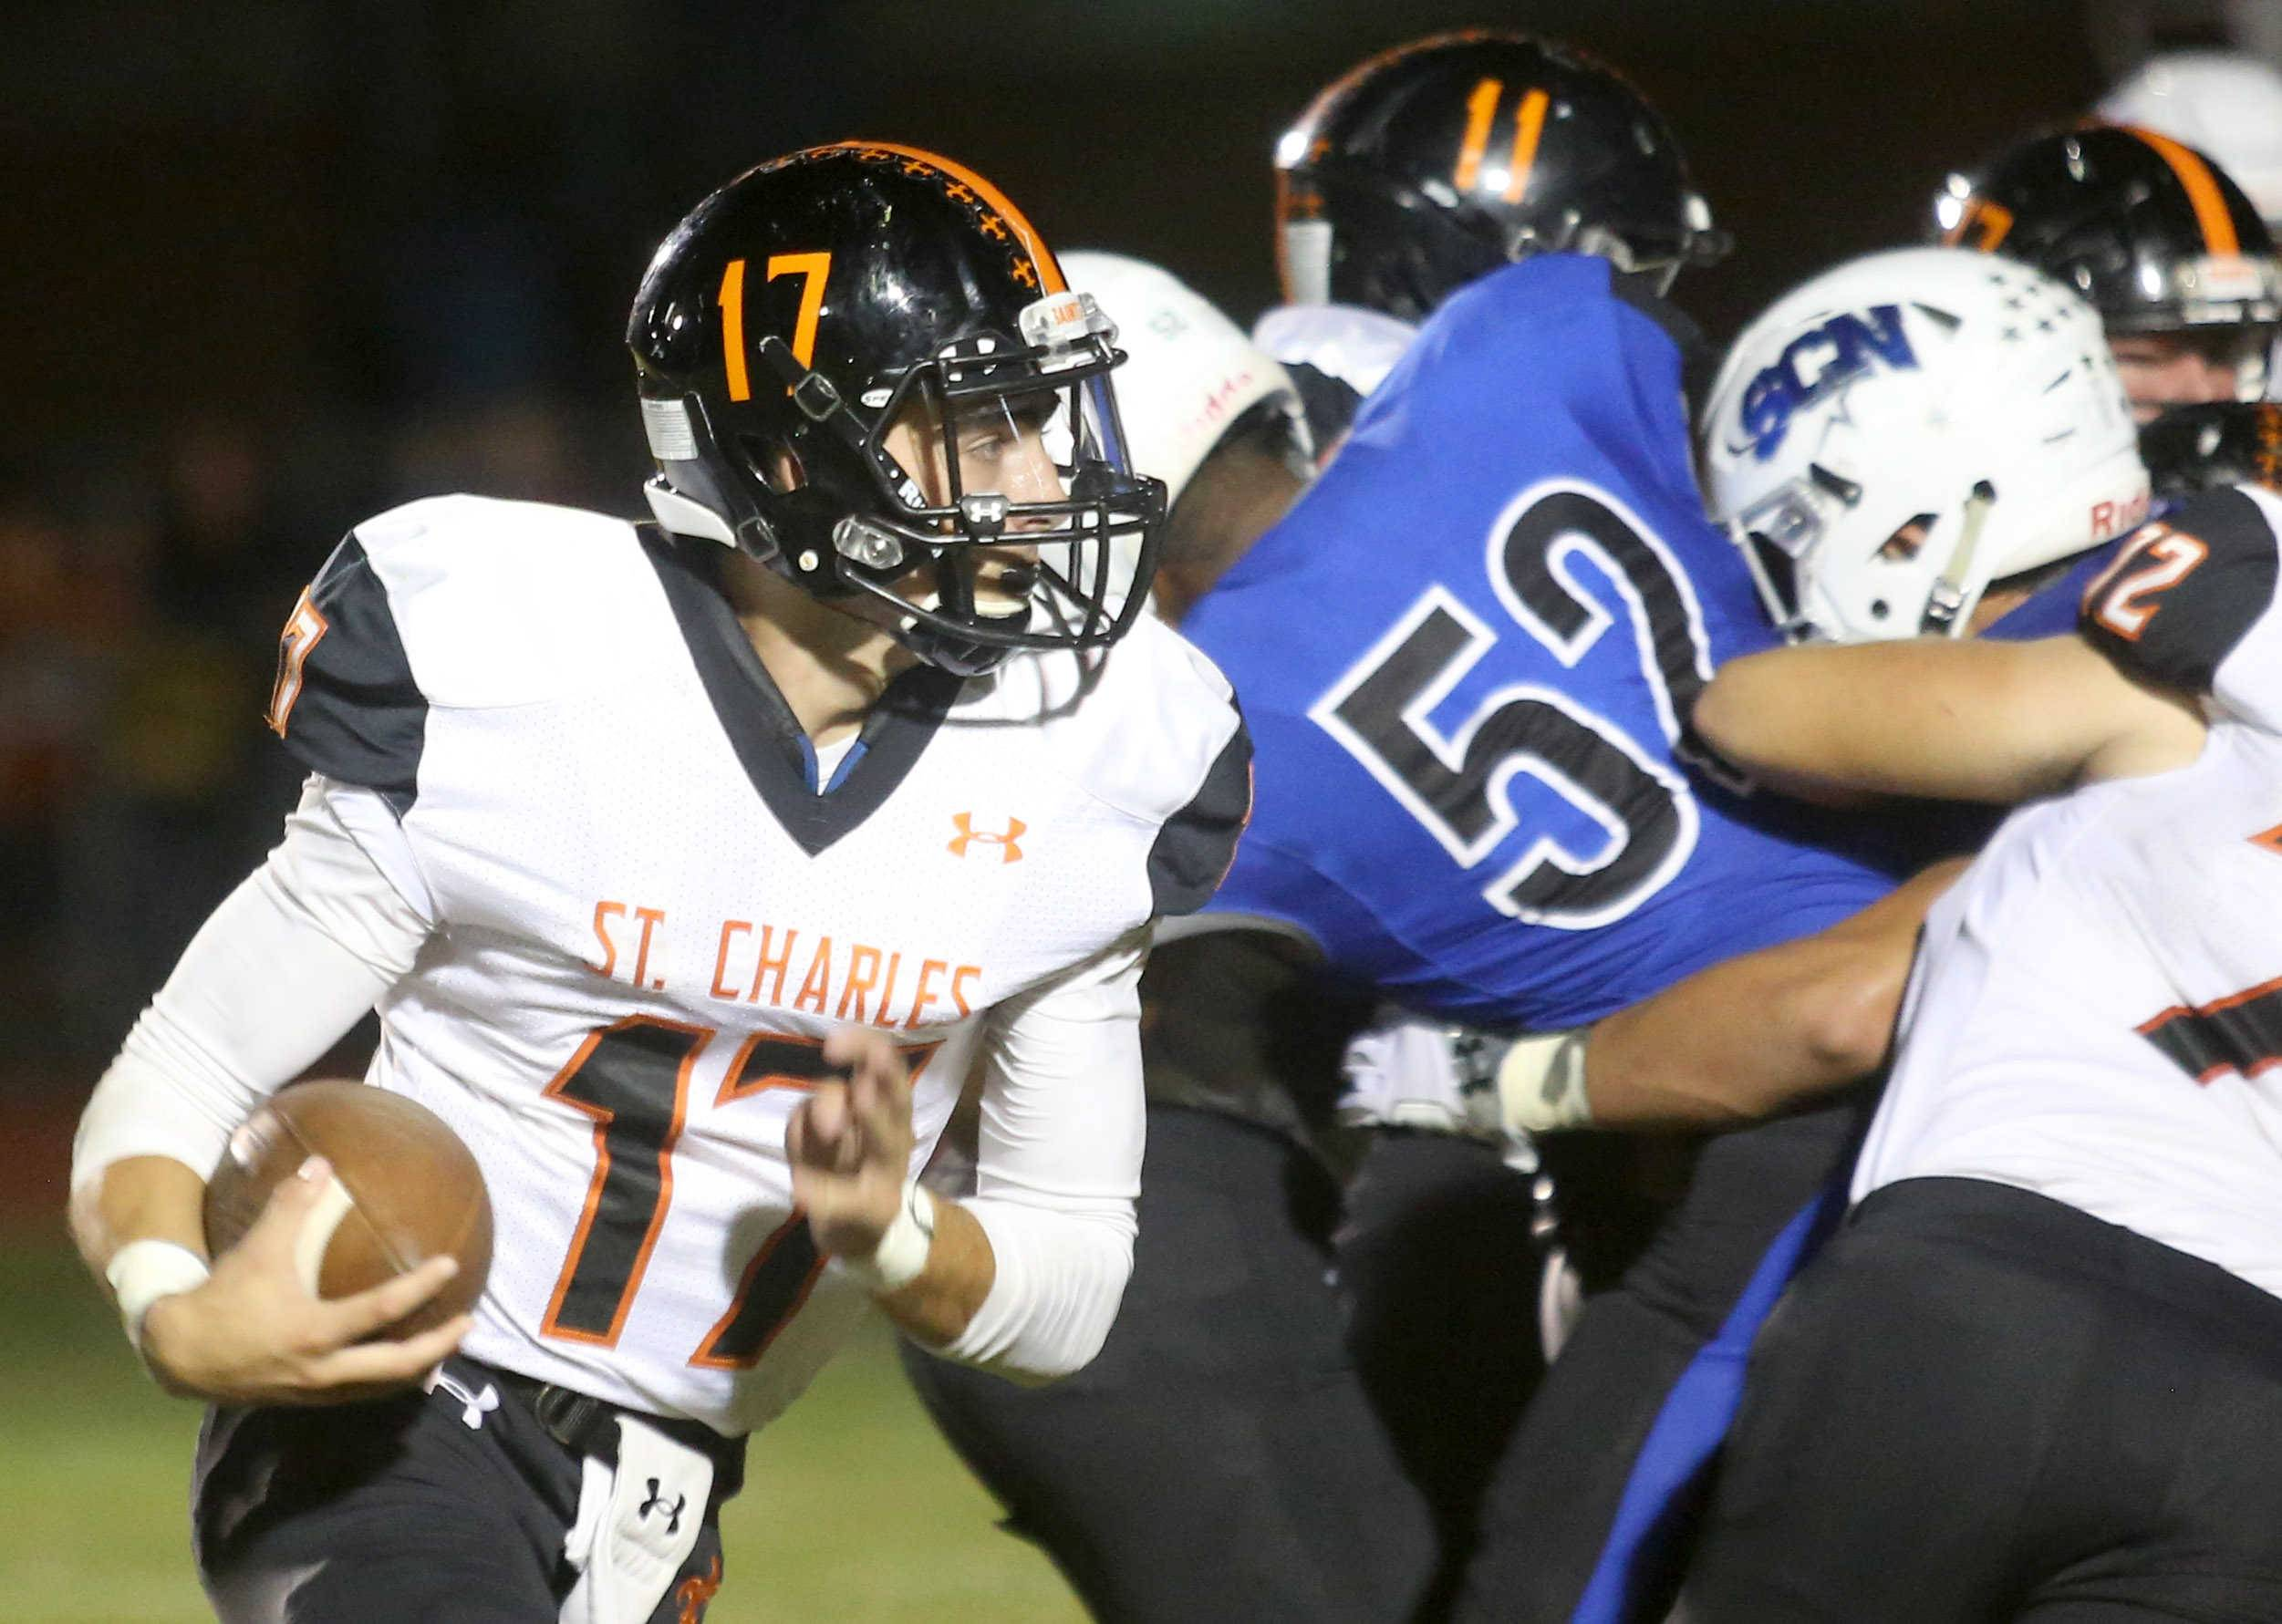 St. Charles East quarterback Zachary Mitchell runs the ball against St. Charles North during the Crosstown Classic football game at St. Charles North Friday night.